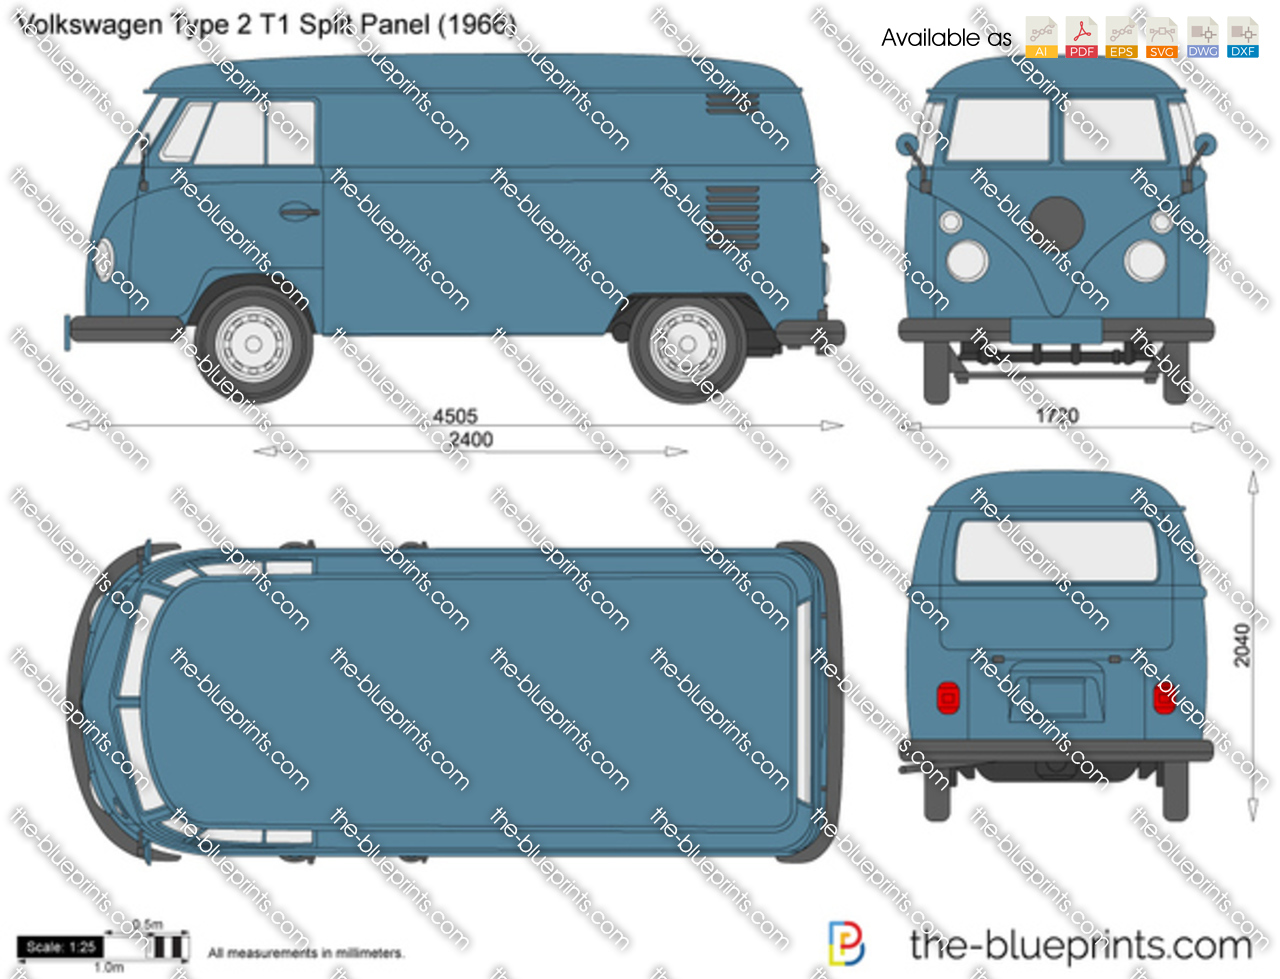 Volkswagen Type 2 T1 Split Panel 1961